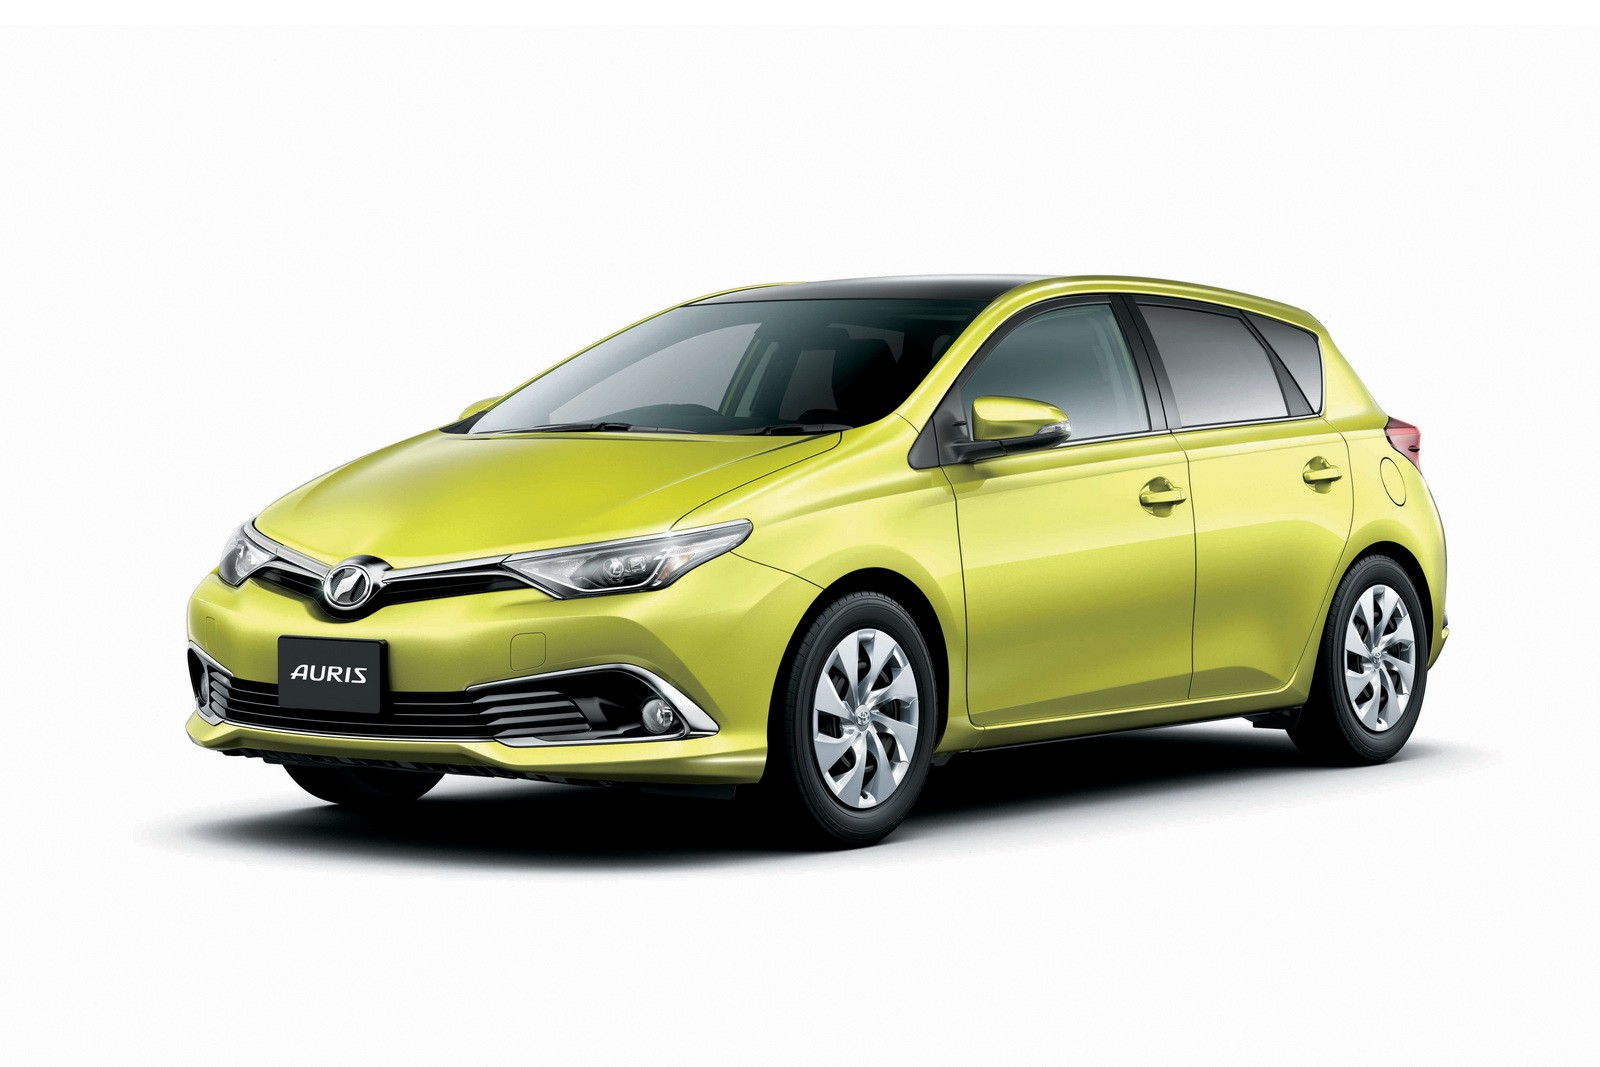 Jdm Toyota Auris Facelift Gets Priced And 1 2l Turbo Engine